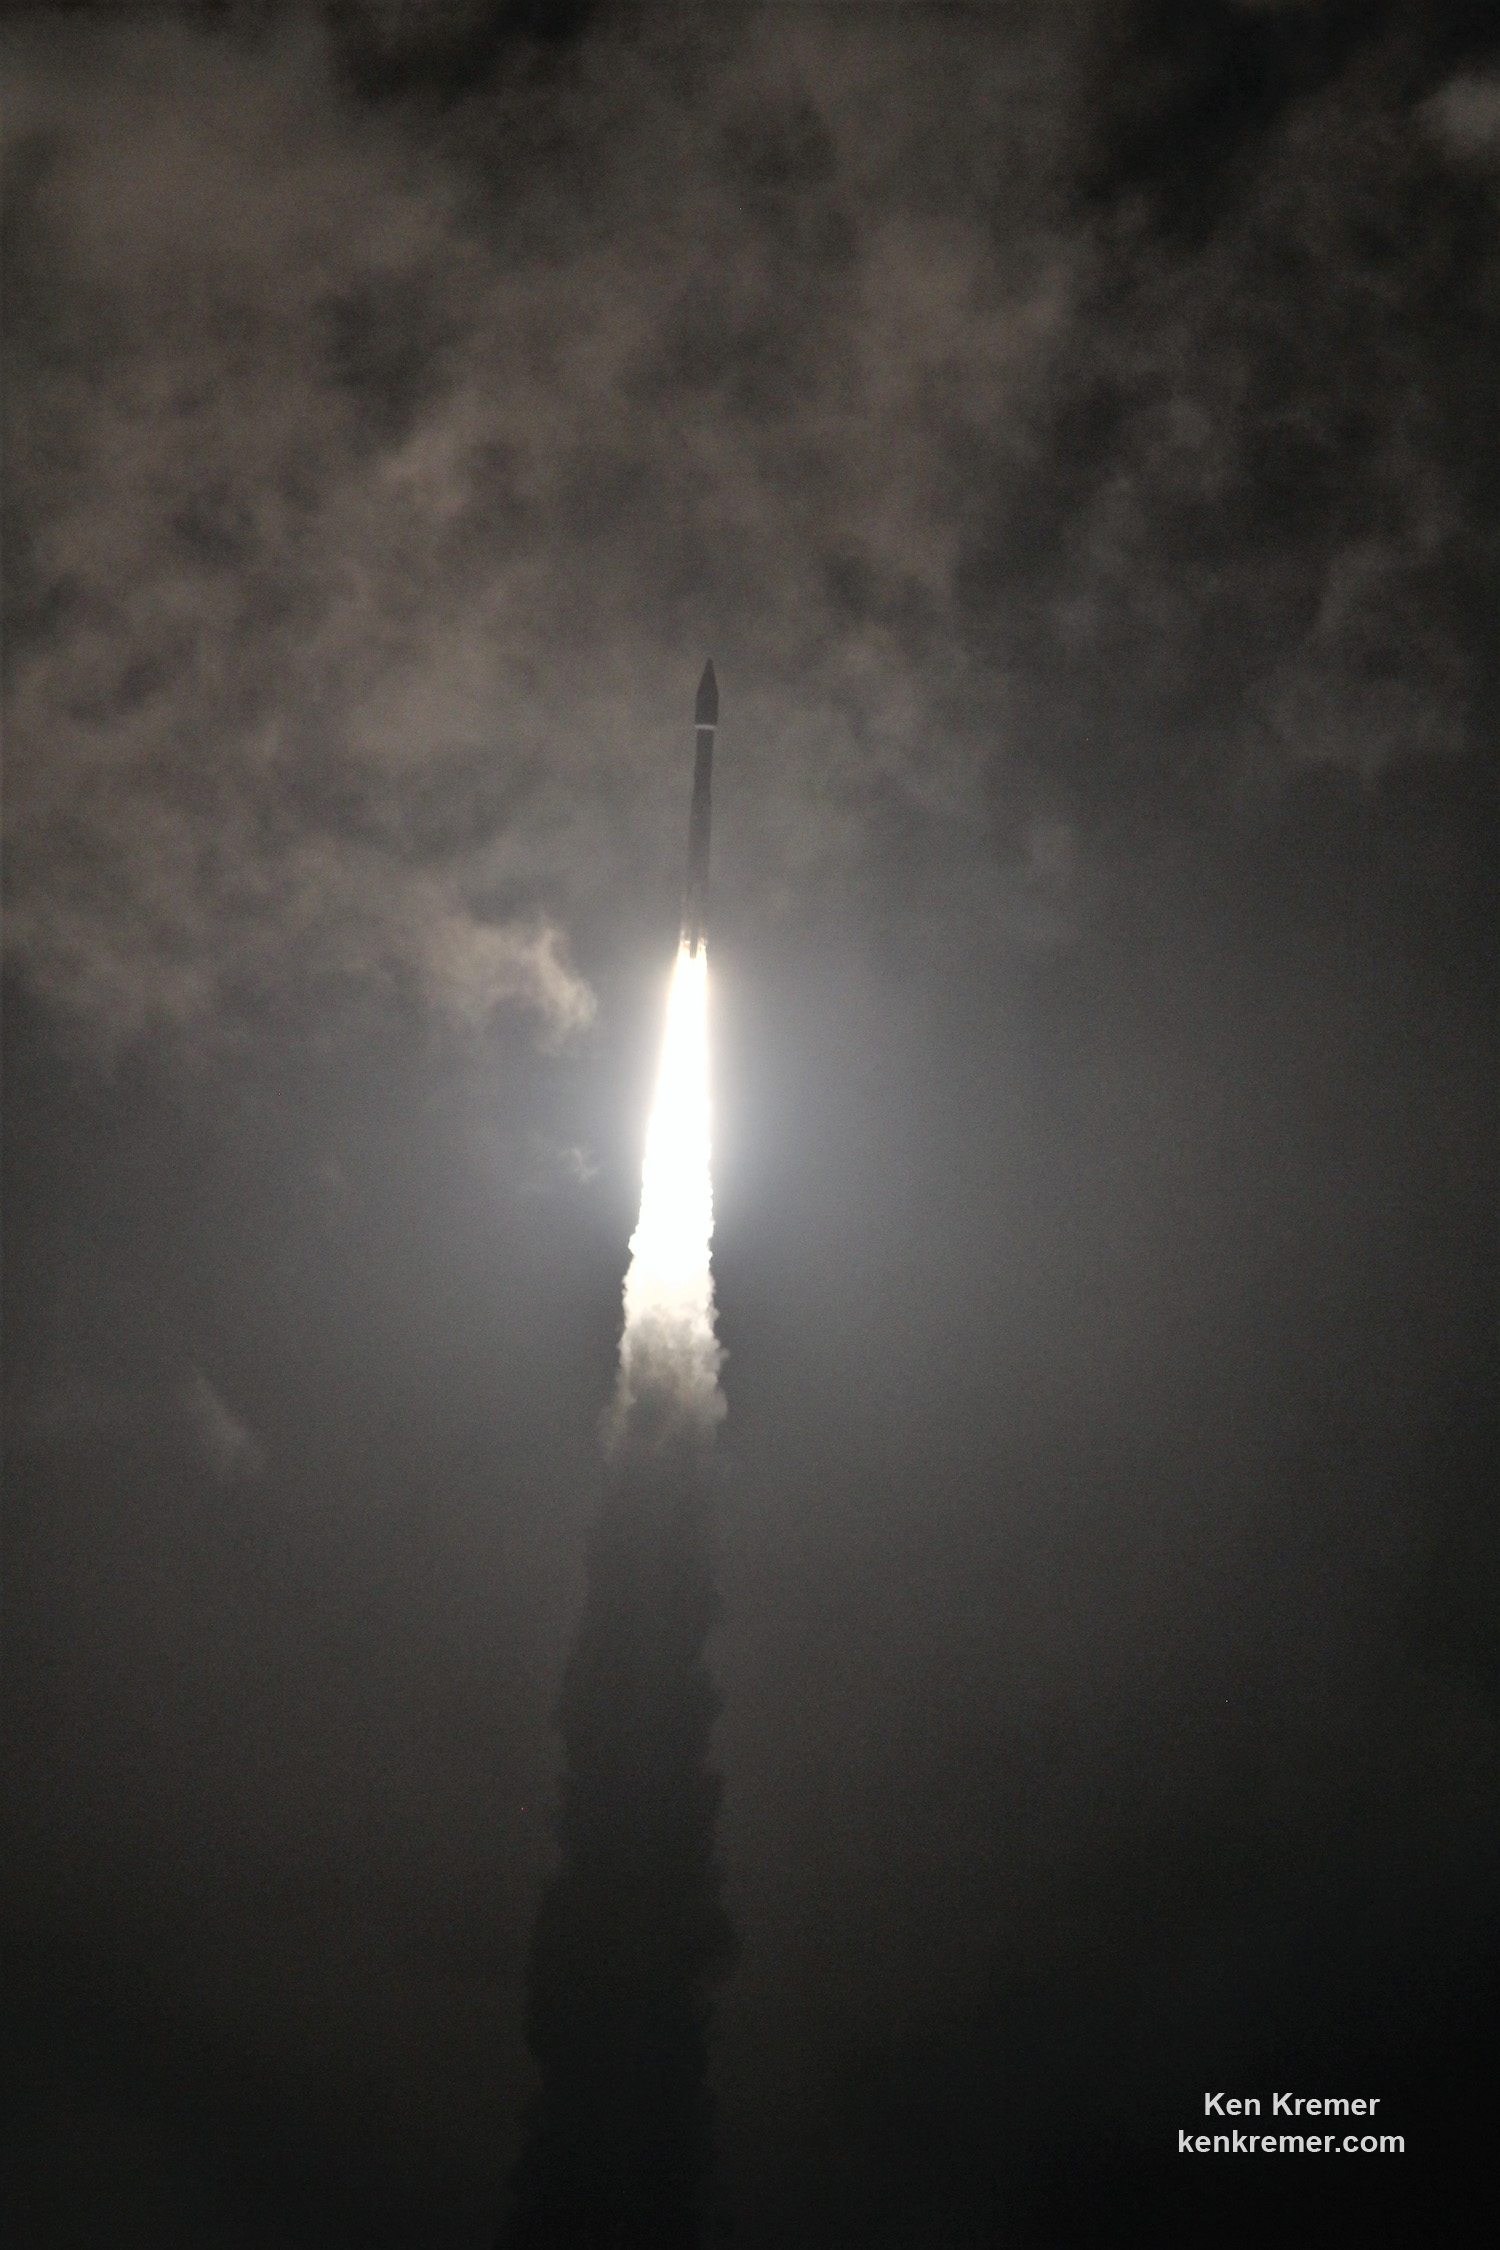 an analysis of the perfect liftoff into the nights sky For a triple play, it also landed the first-stage booster at sea, its 24th such  recovery  tess satellite on wednesday night, delighting scientists and space  fans who  nasa tweeted that the deployment happened right on schedule and  the  when the space company decided to conduct more analysis of the.